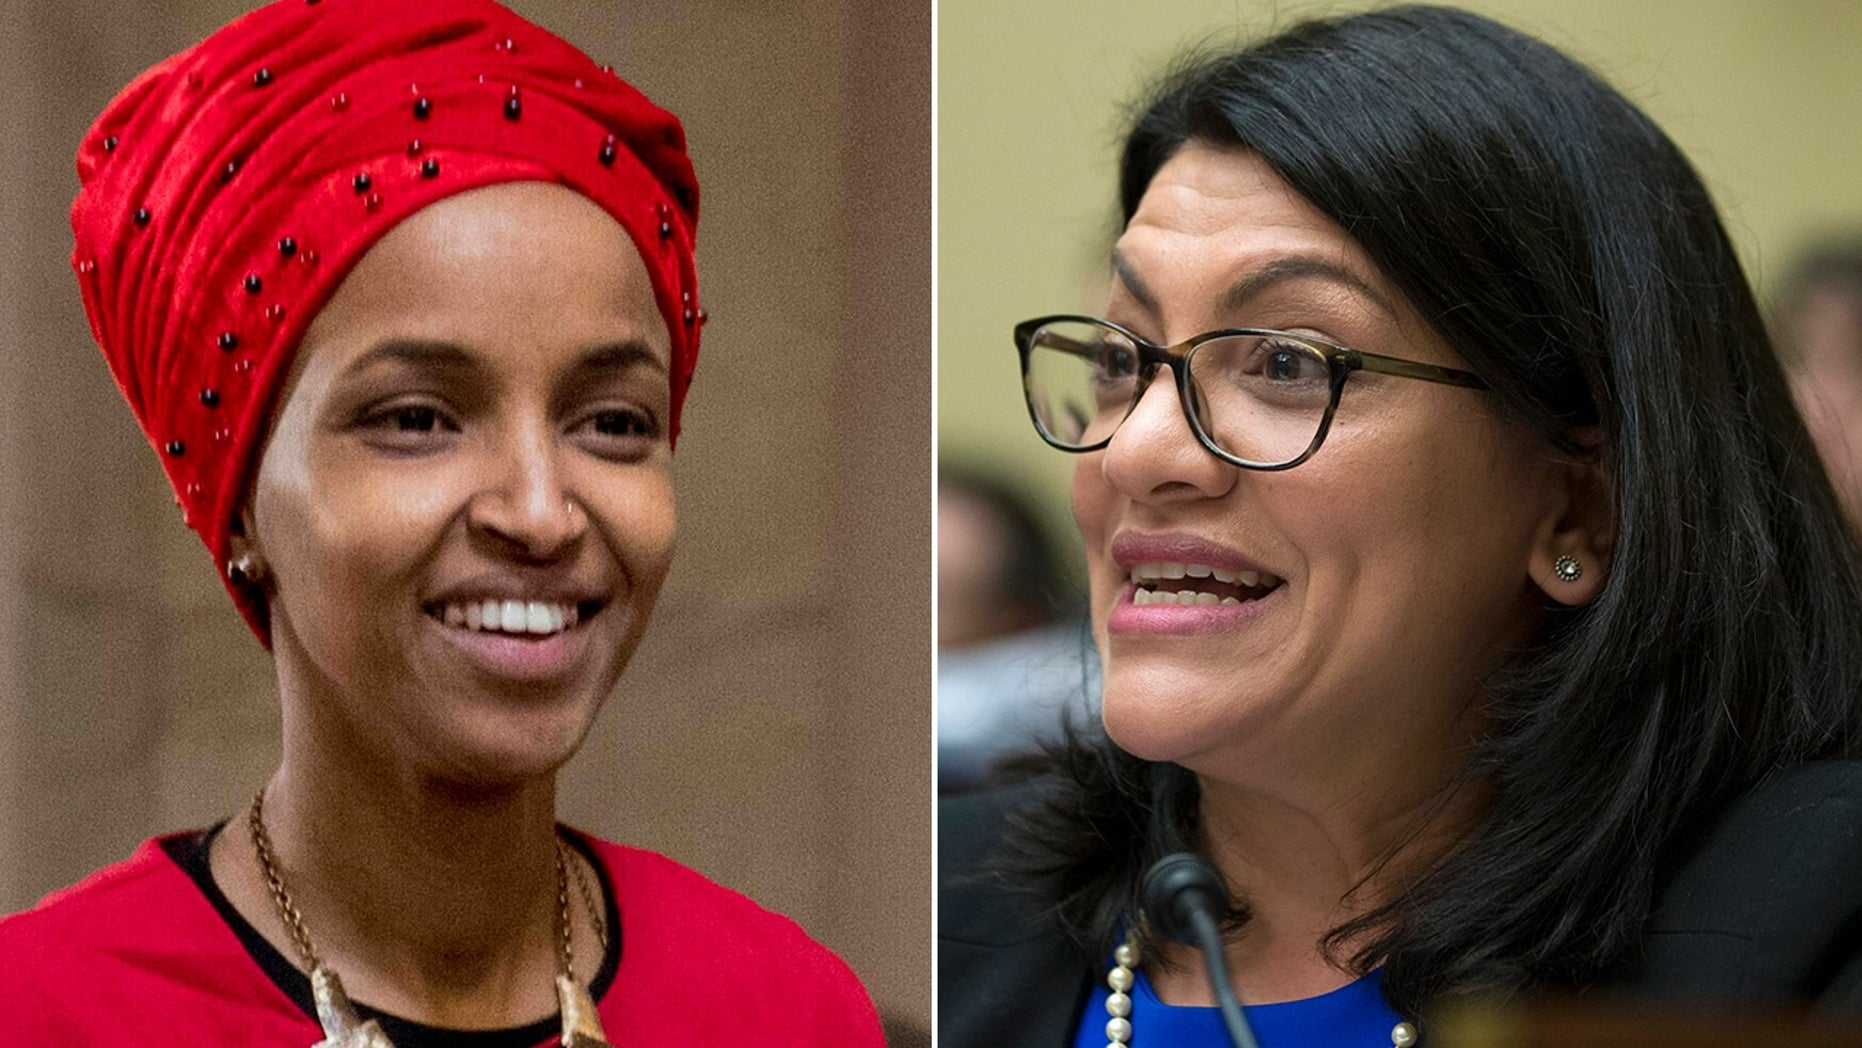 Democratic Reps. Ilhan Omar, D-Minn., and Rashida Tlaib of Michigan